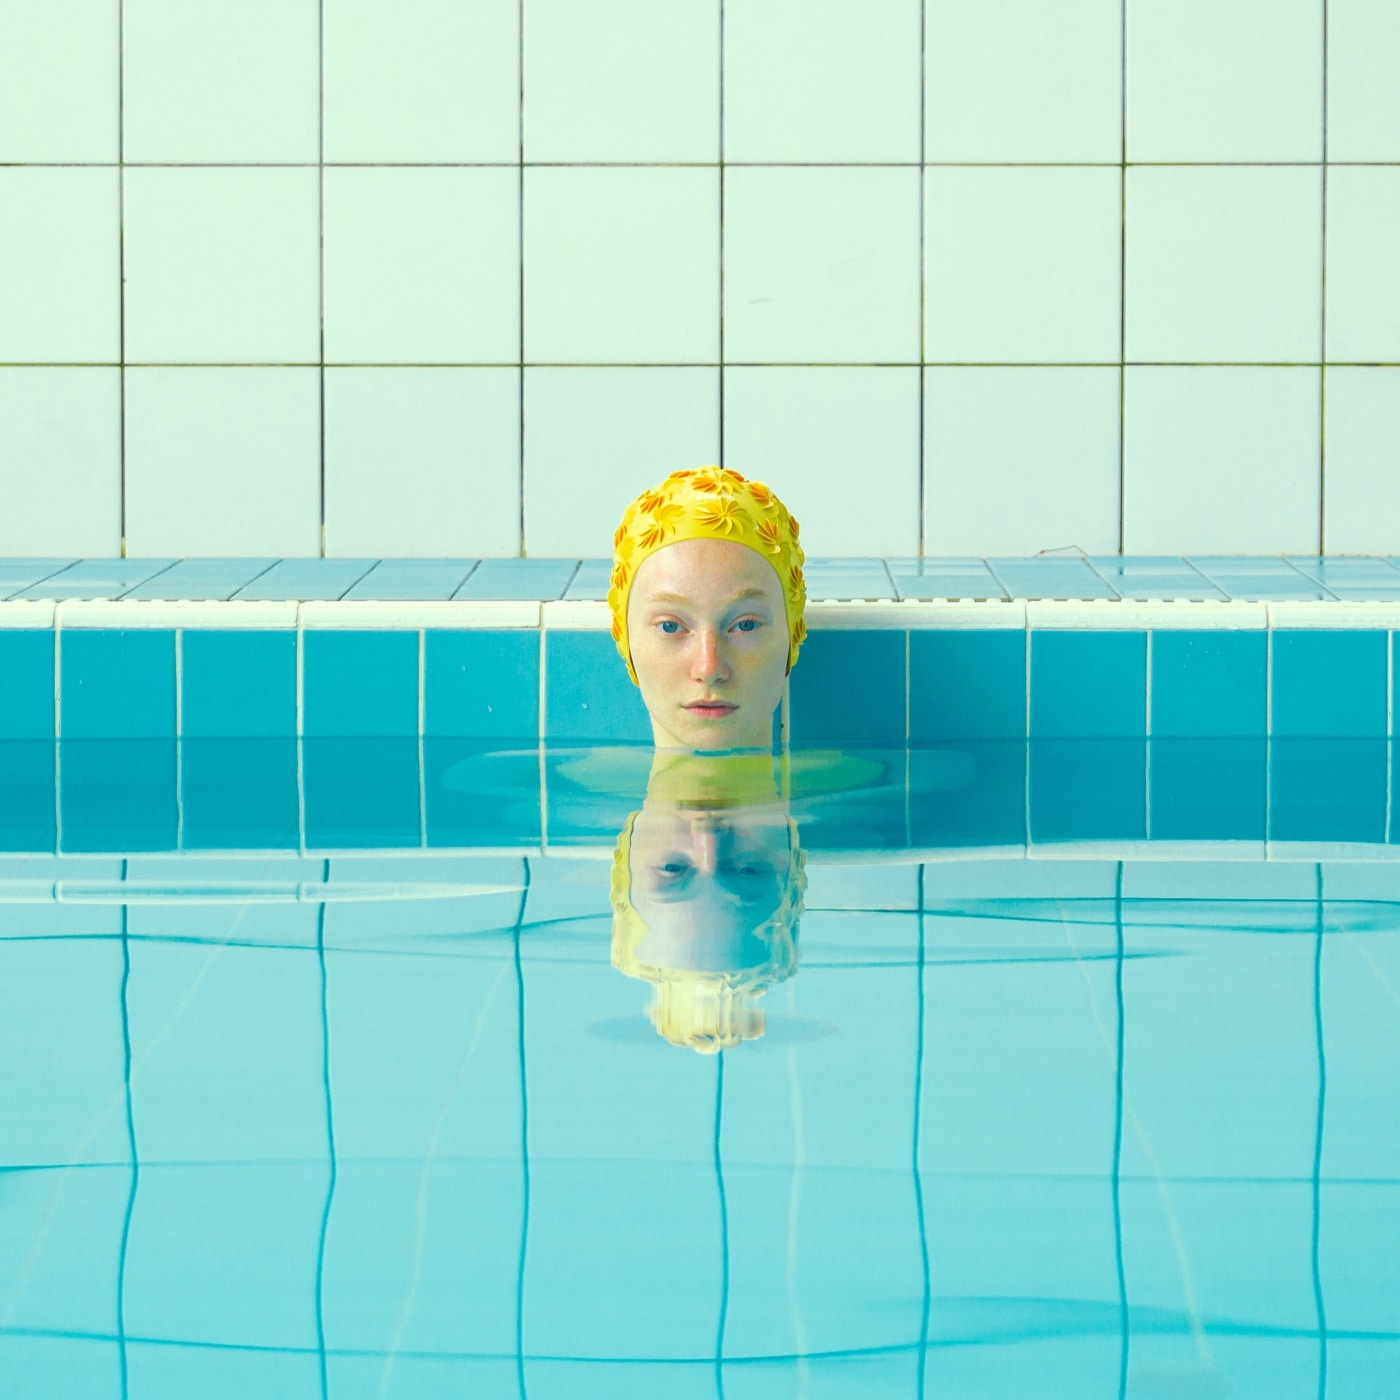 Swimmer Portraits by Maria Svarbova